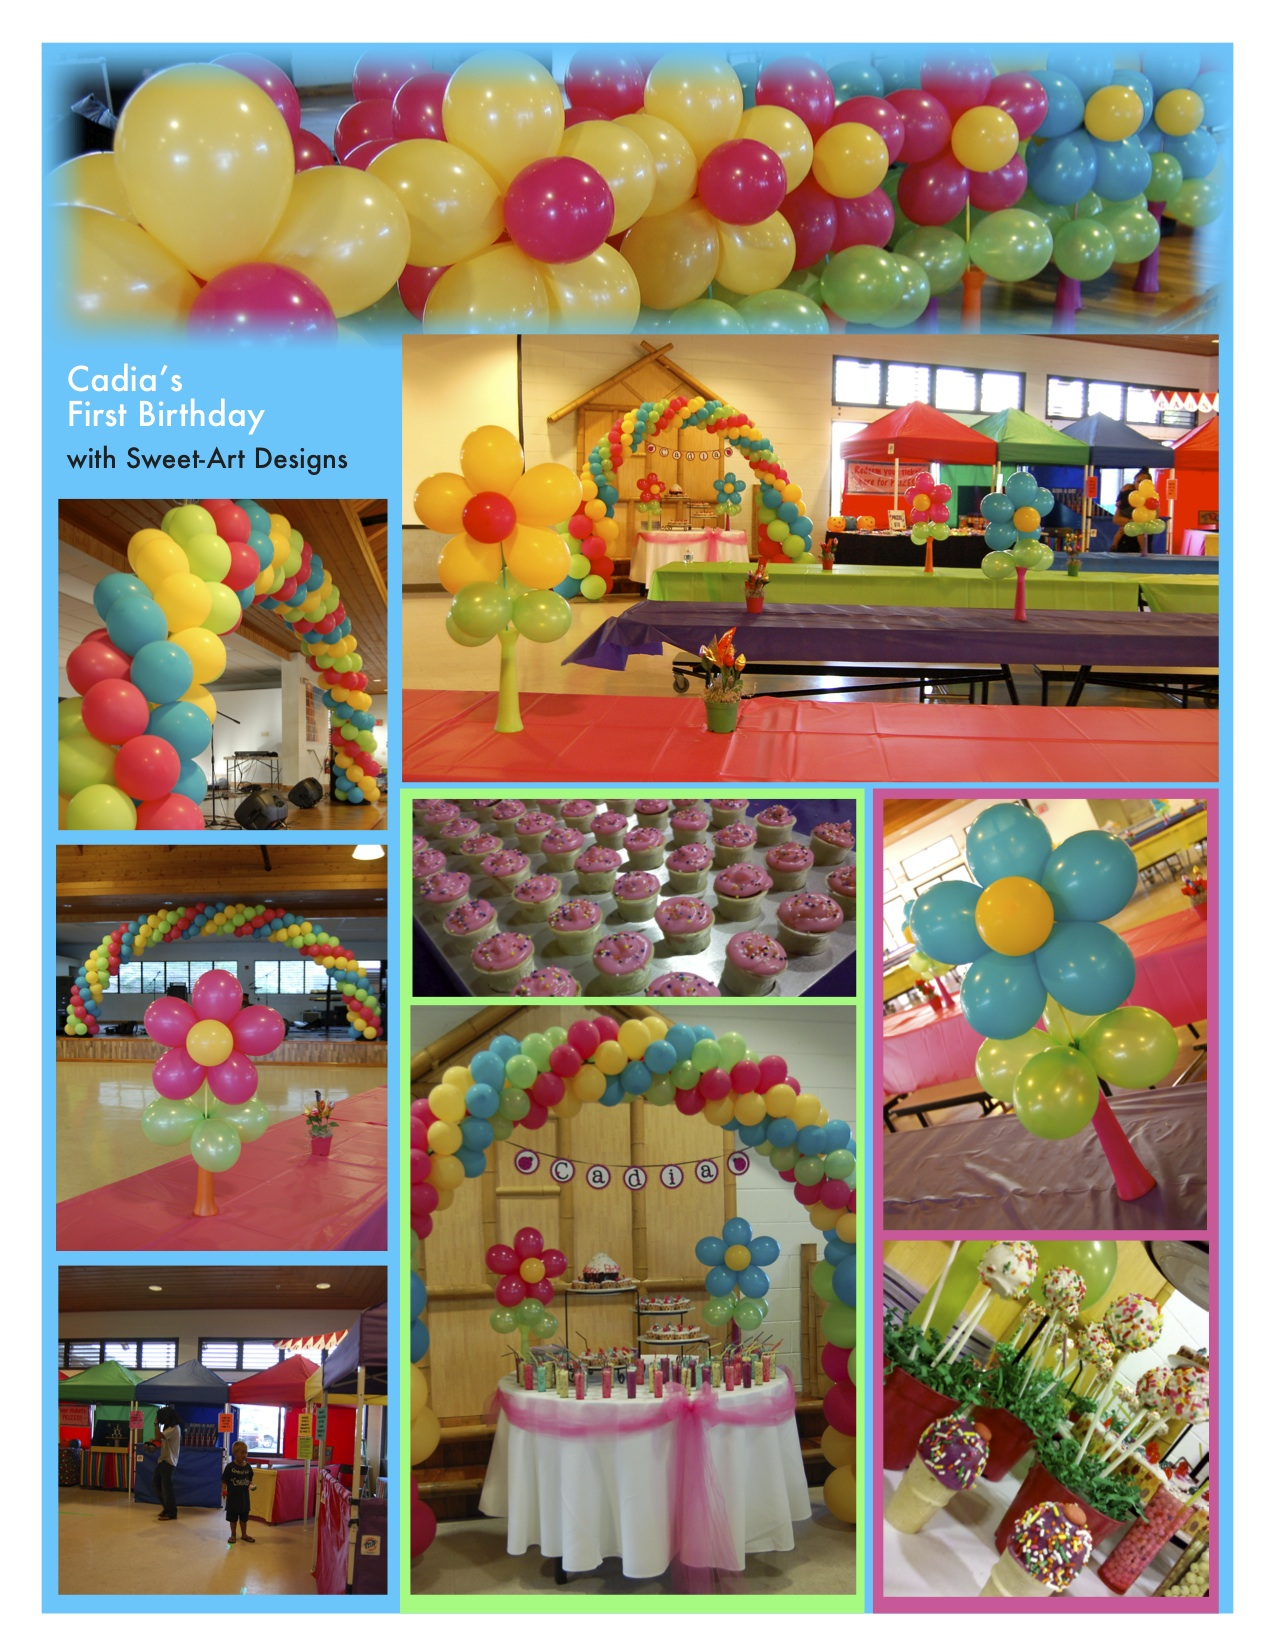 Decorations sweet art designs creative ideas from the for Balloon decoration for 1st birthday